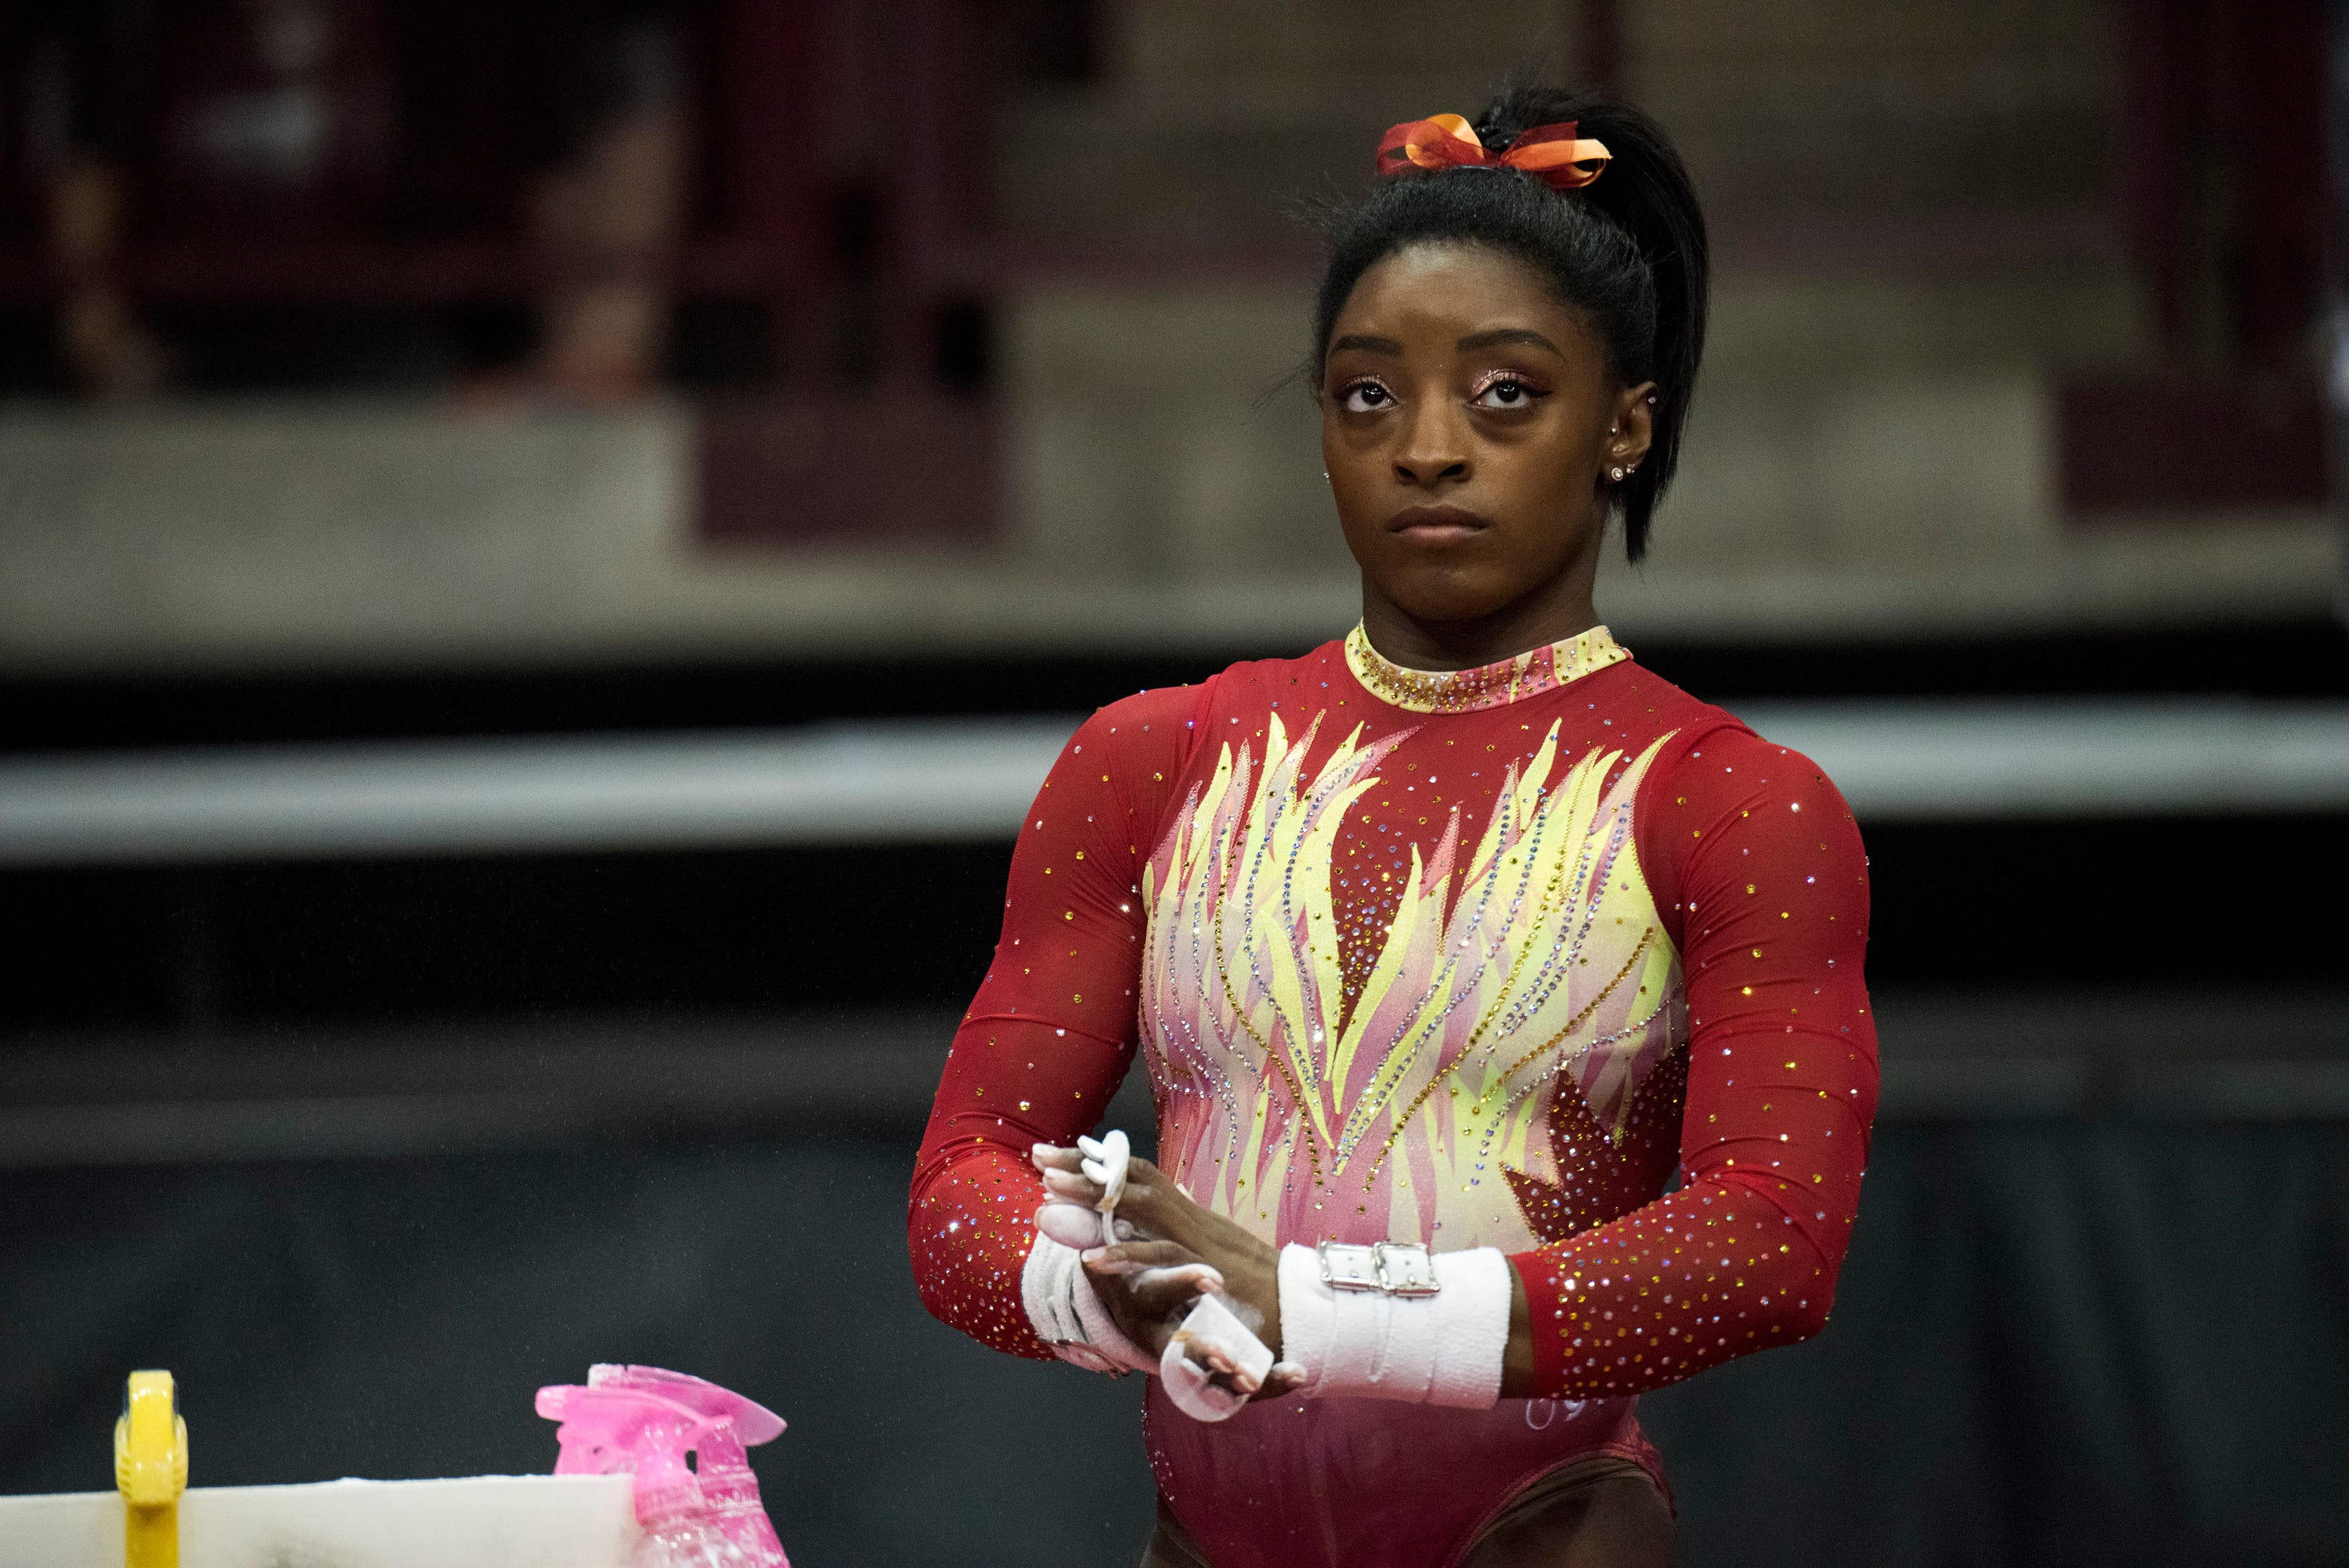 Simone Biles has had enough of the silence from USA Gymnastics CEO Kerry Perry